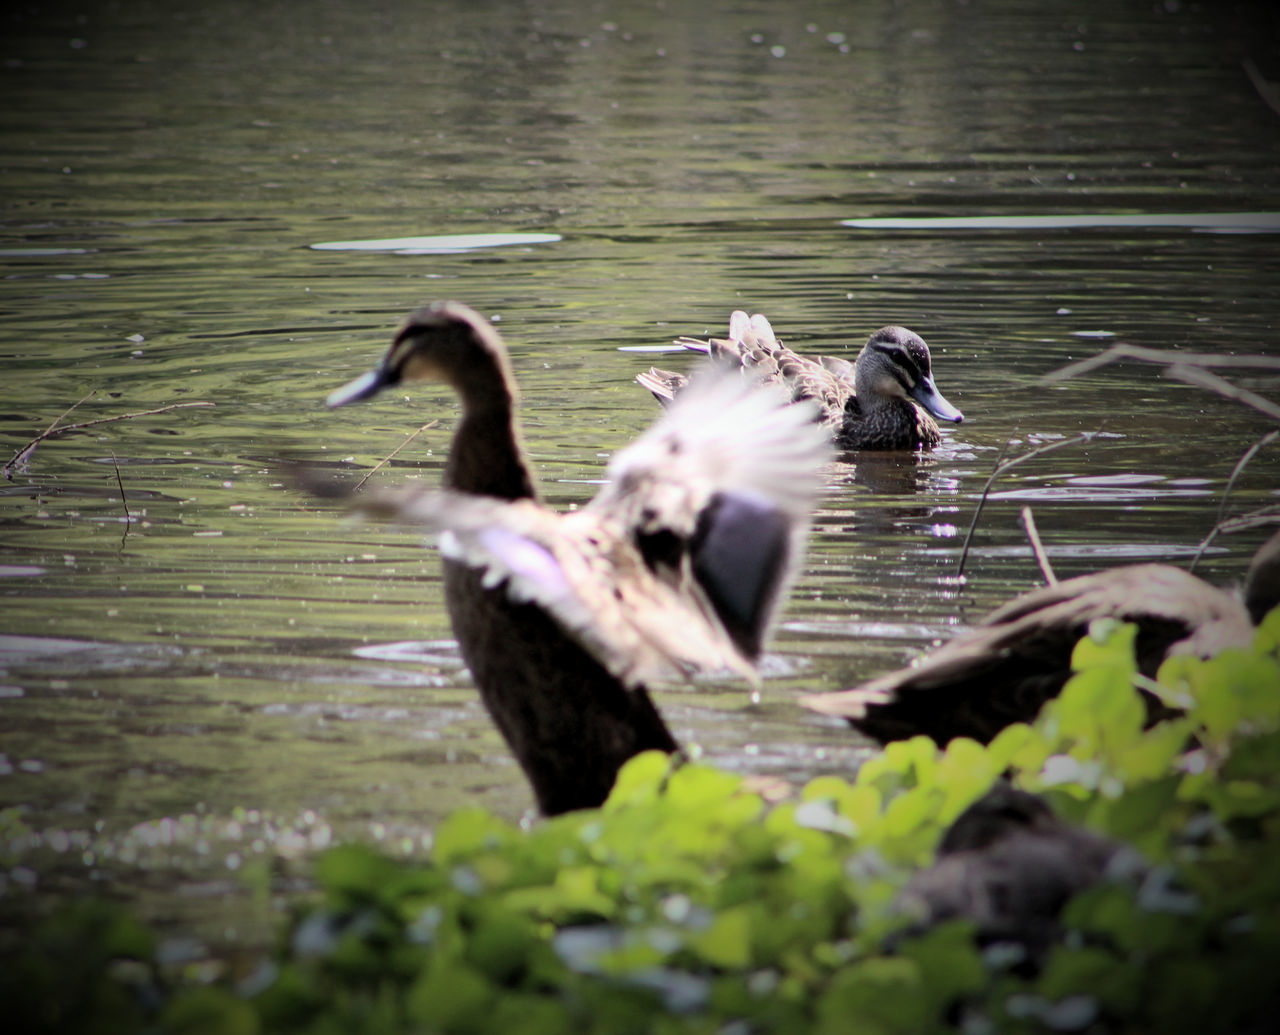 animals in the wild, animal themes, bird, water, lake, animal wildlife, nature, no people, day, one animal, waterfront, water bird, outdoors, spread wings, swimming, beauty in nature